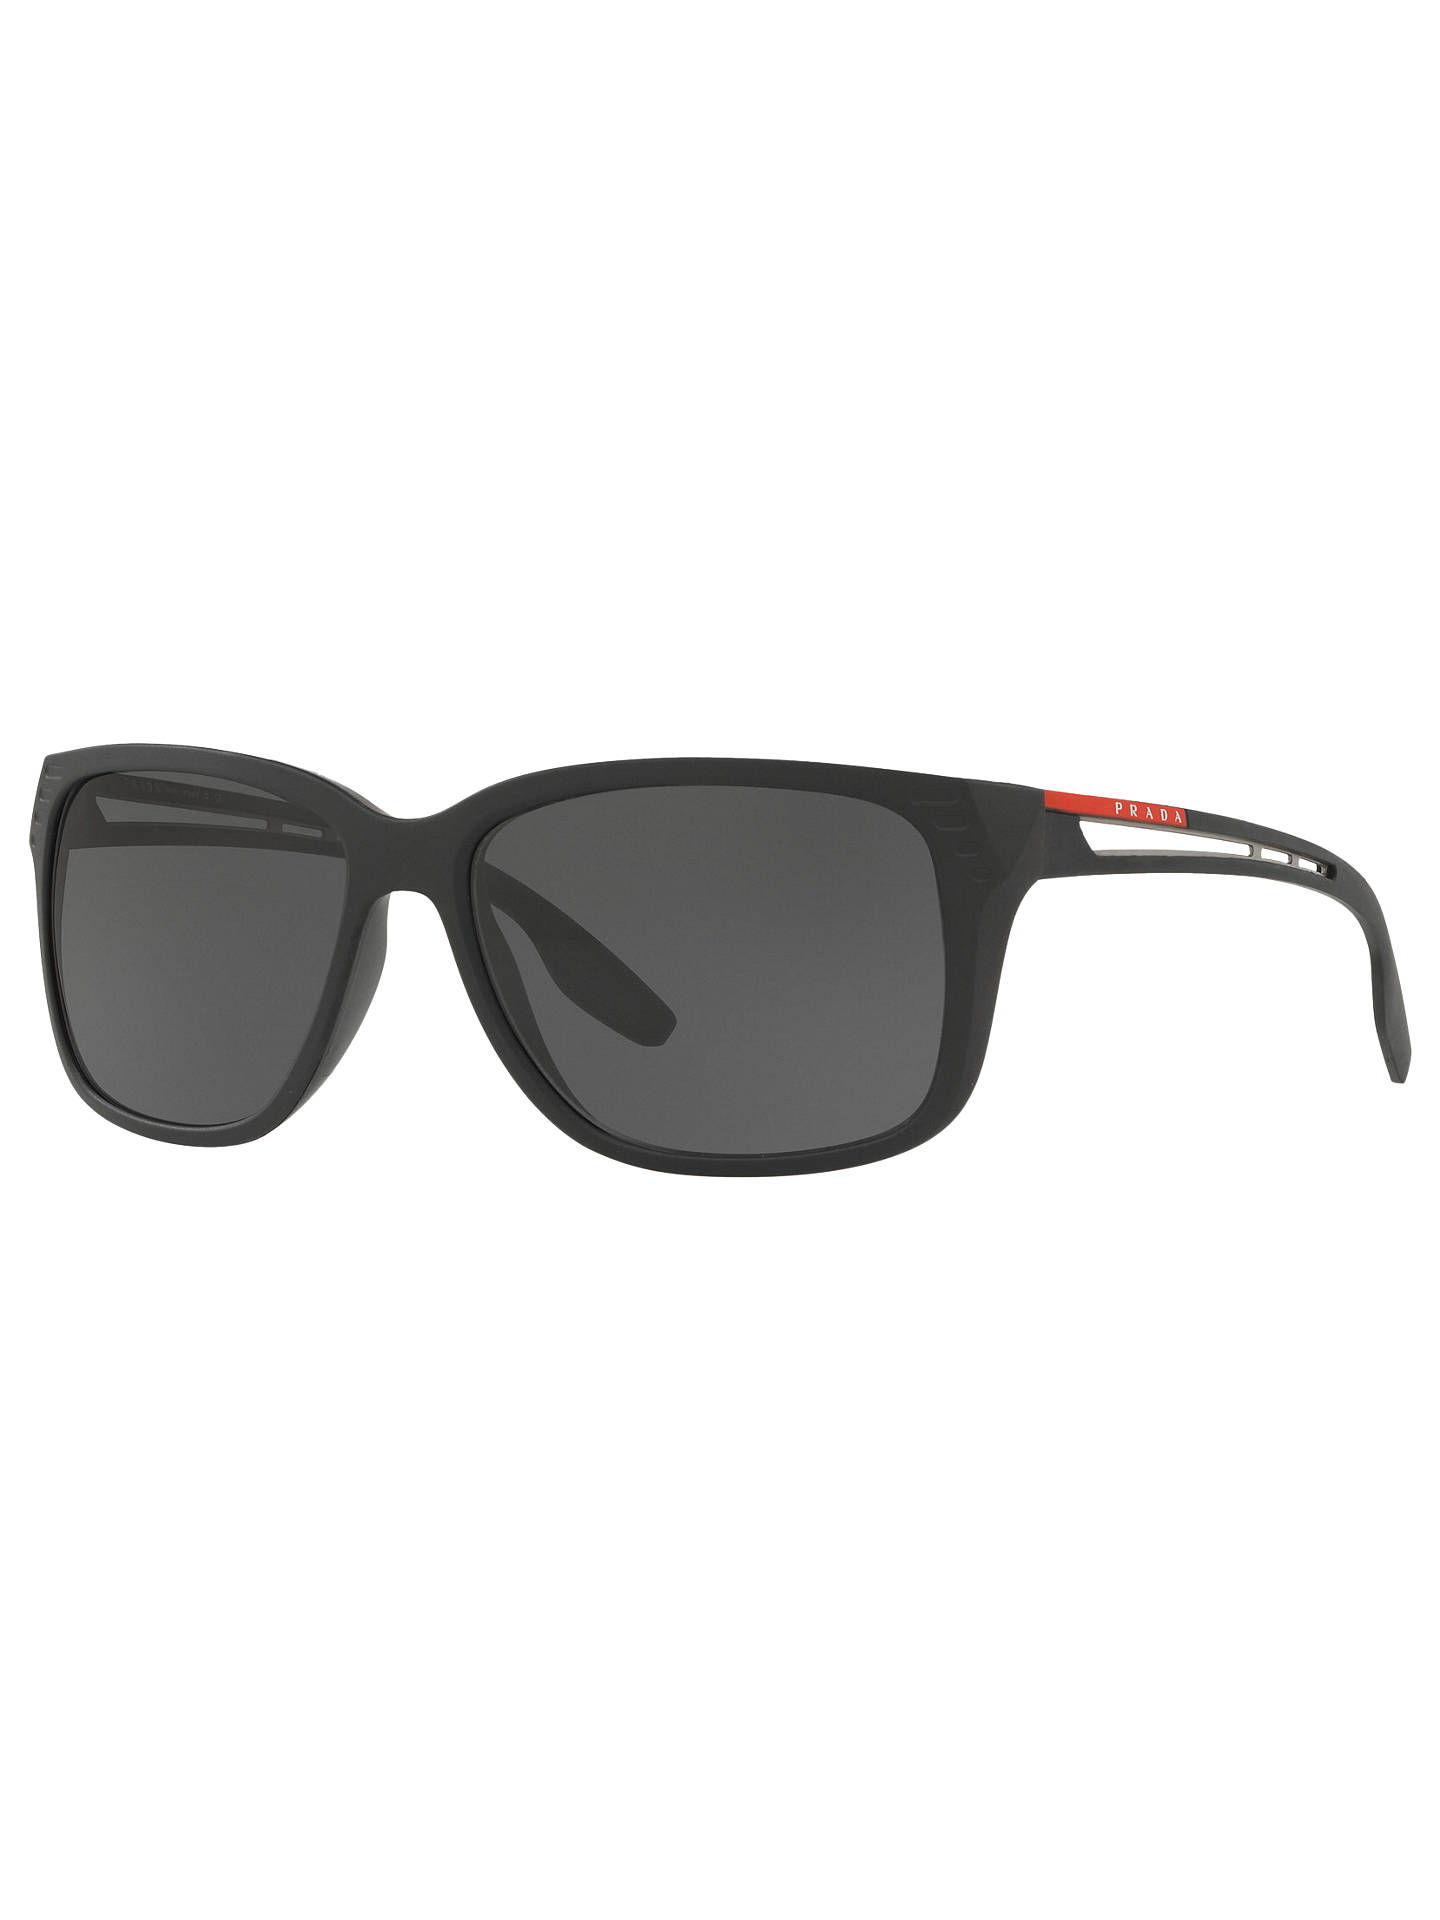 f9831a884d95 Buy Prada Linea Rossa PS 03TS Rectangular Sunglasses, Matte Black/Grey  Online at johnlewis ...